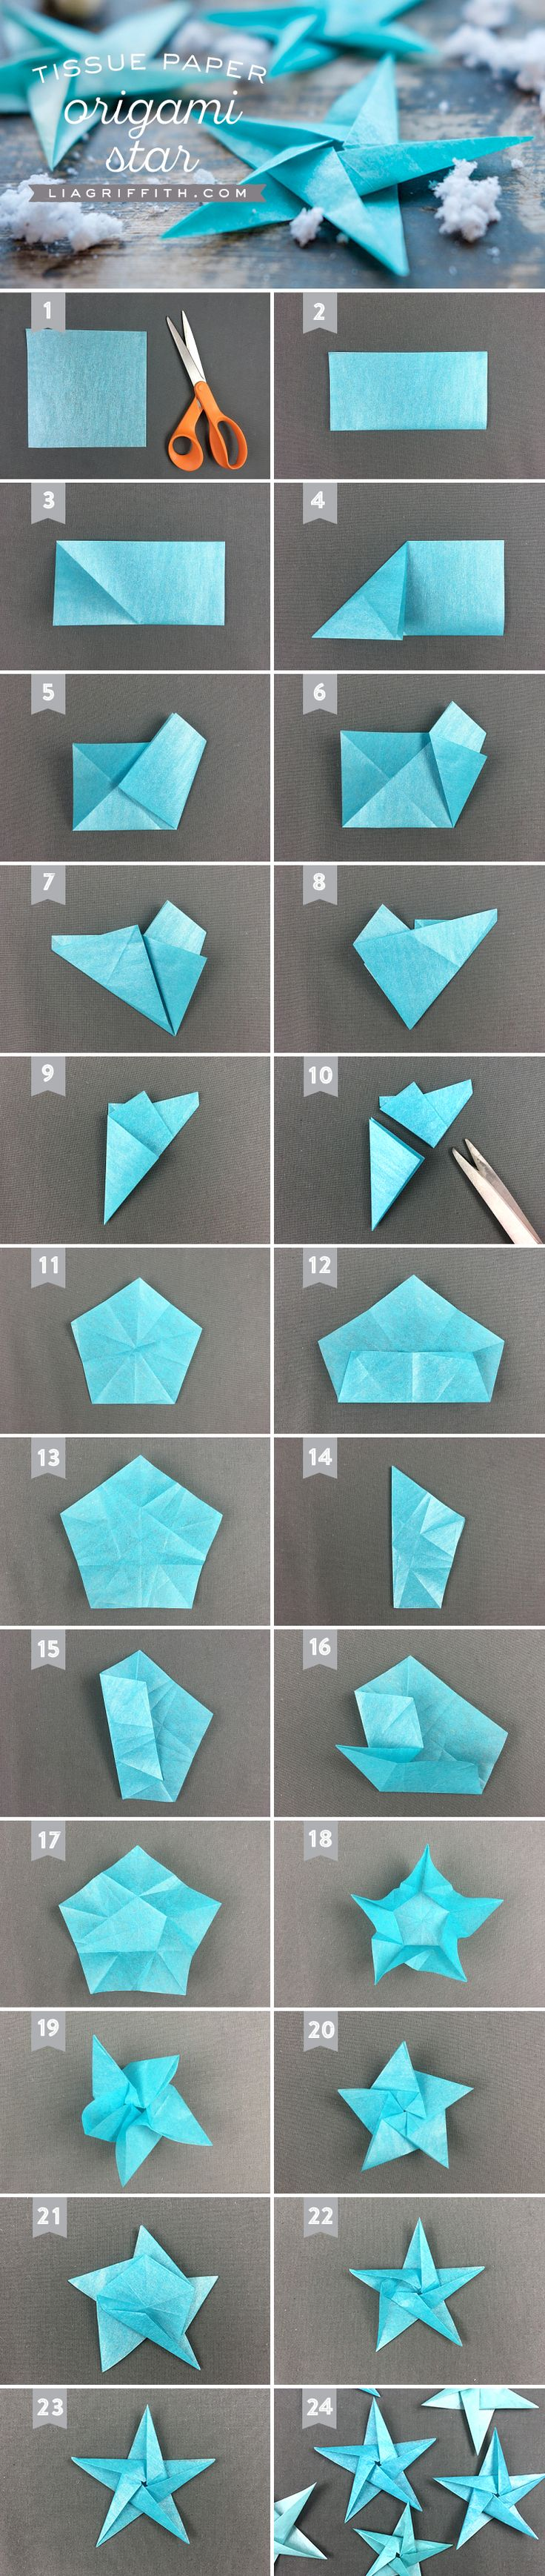 origamipaperstar_tutorial